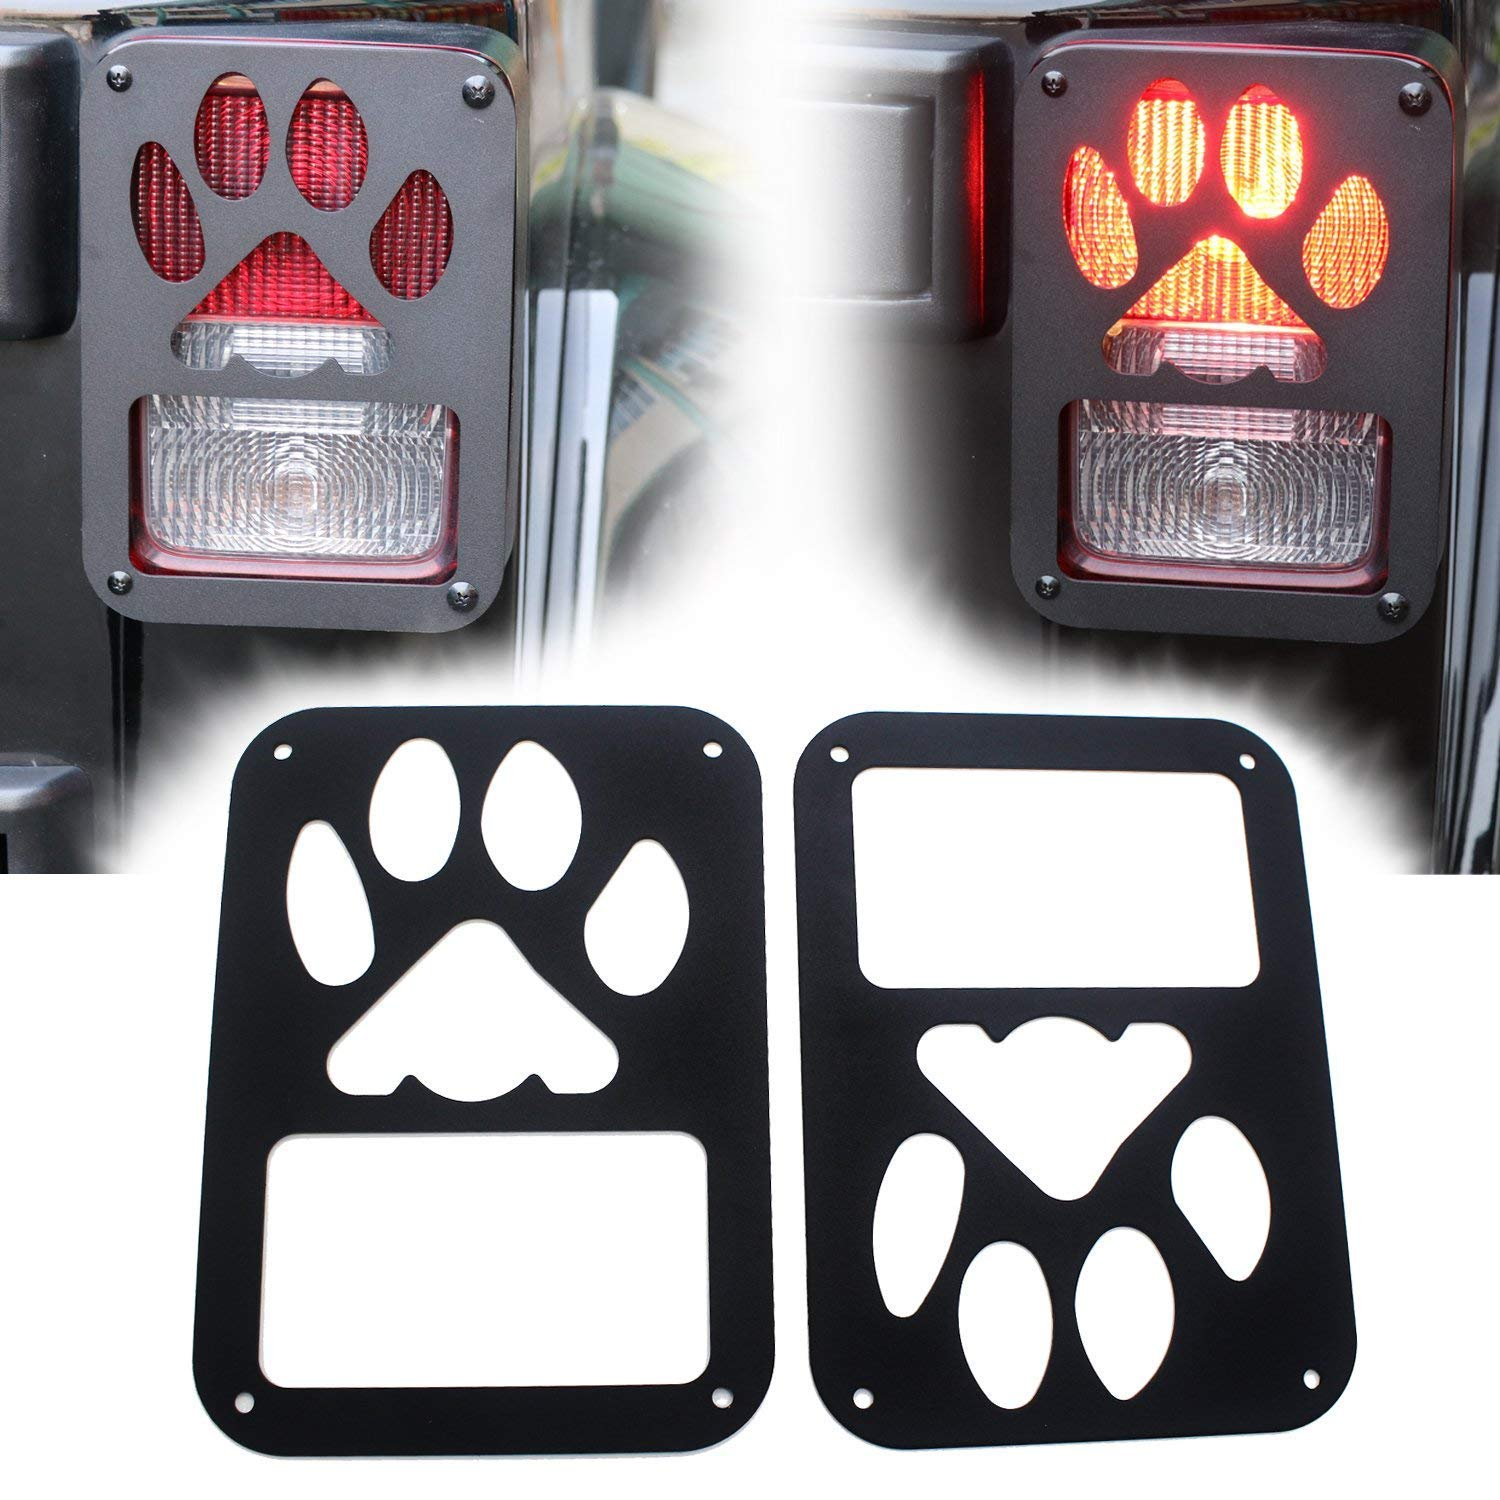 Yoursme Tail Lamp Guard Black Taillight Rear Light Trim Cover Protector for 2007 2008 2009 2010 2011 2012 2013 2014 2015 2016 2017 Jeep Wrangler Accessories JK Unlimited Pair (Black Dog Paw) 4333250338